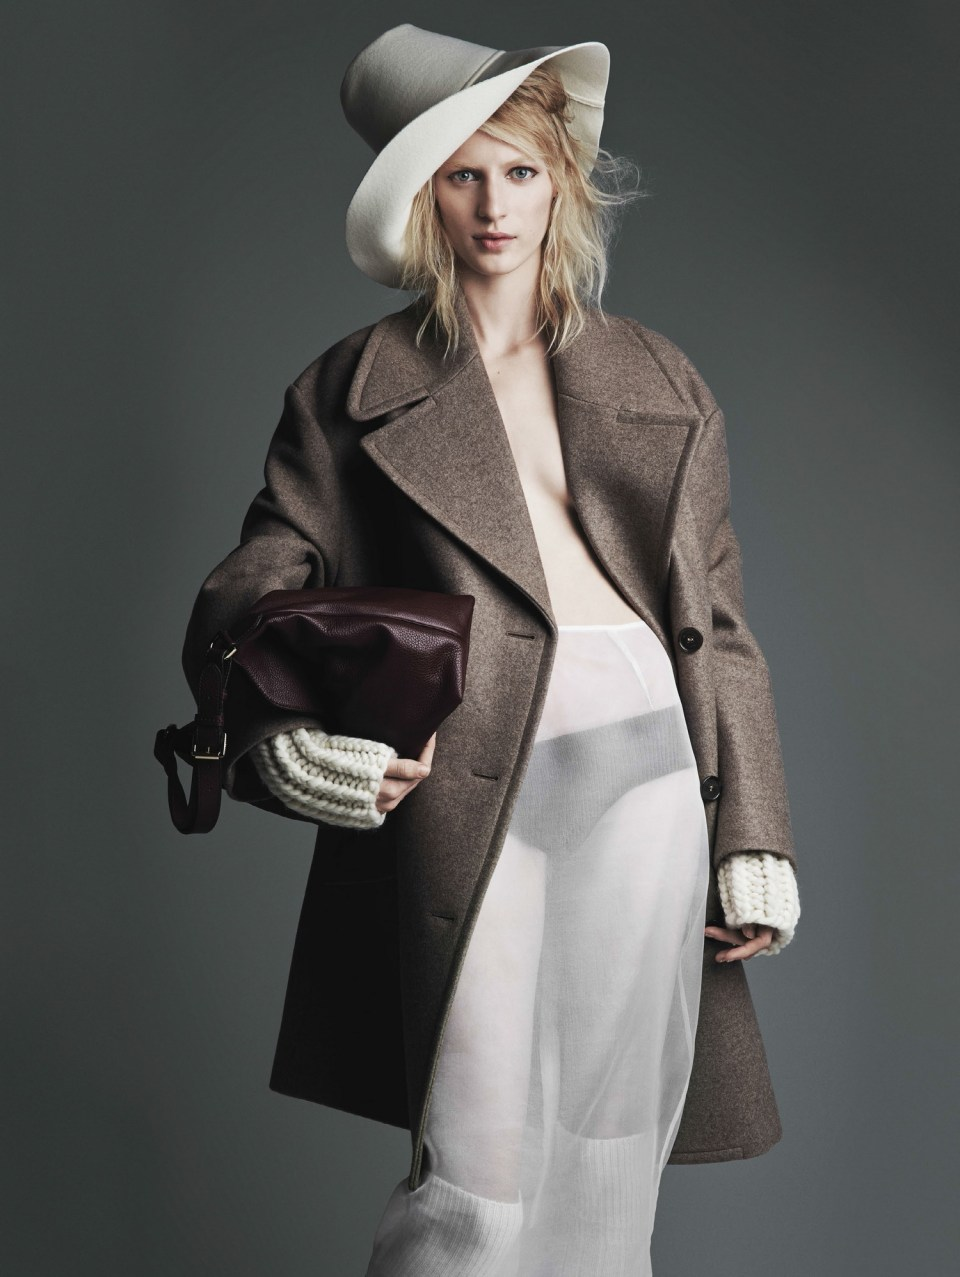 julia-nobis-by-patrick-demarchelier-for-vogue-uk-august-2014-21